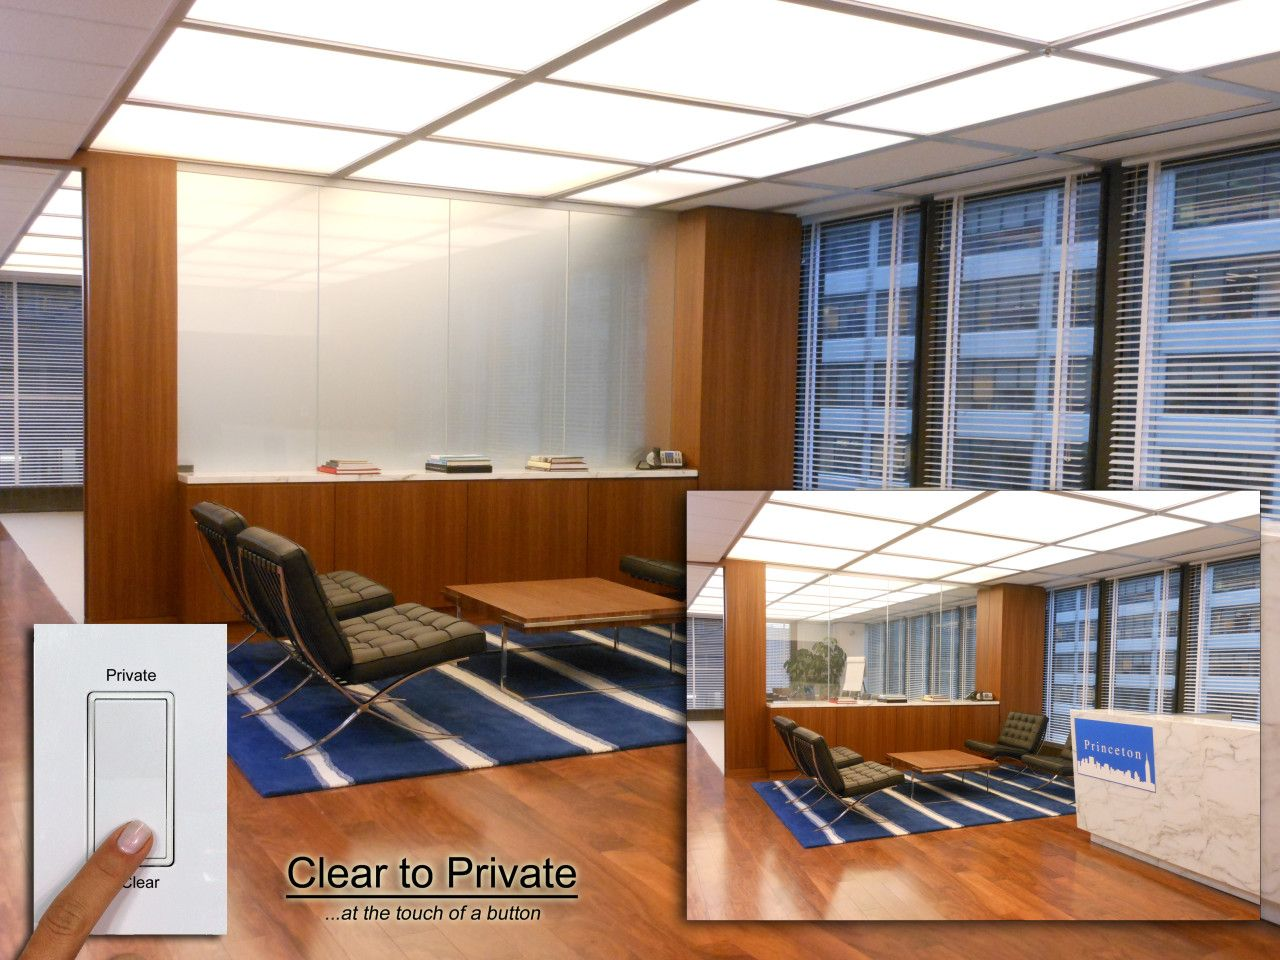 Dynamic clear to private commercial room dividers modern glass